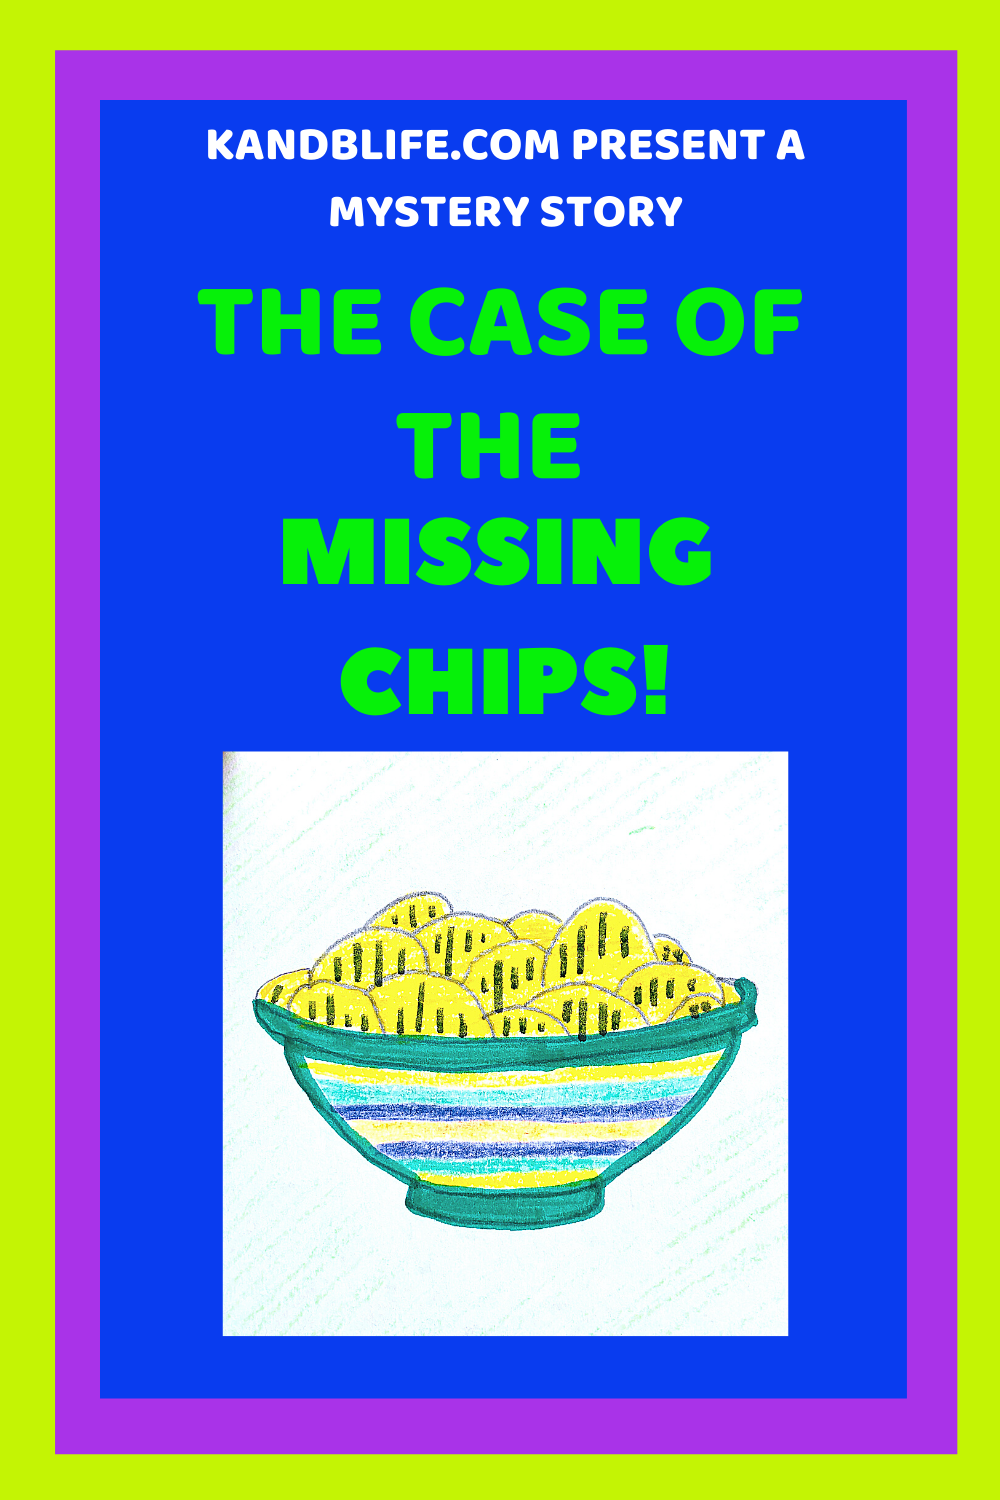 Bowl of potato chips for the story, The Case of the Missing Chips!